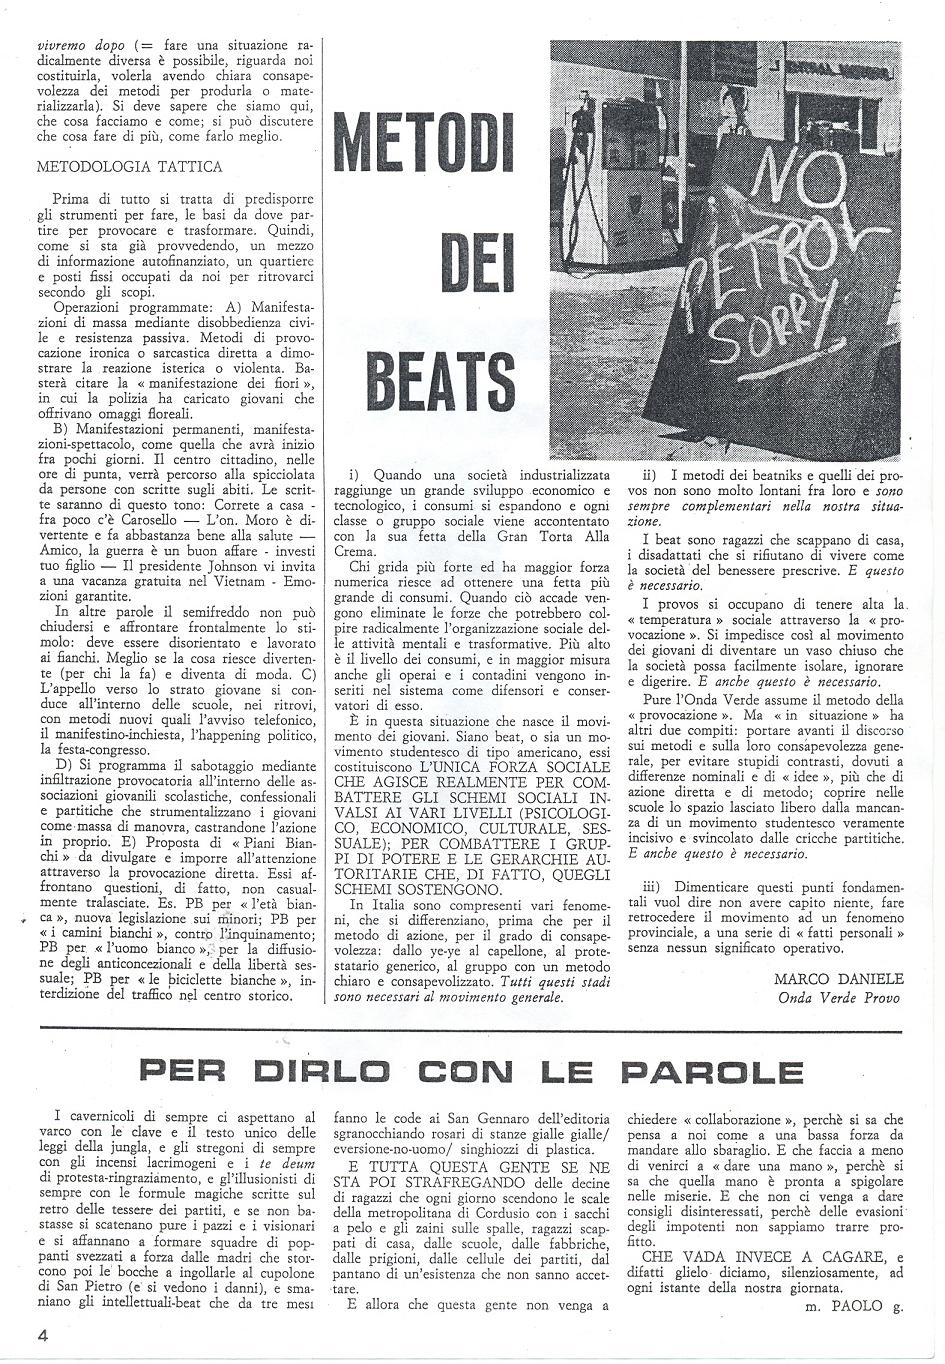 'To say it in words',by Melchiorre Paolo Gerbino, was intended to drive away people foreign to the Movement,who wanted to publish their articles in the magazine Mondo  Beat